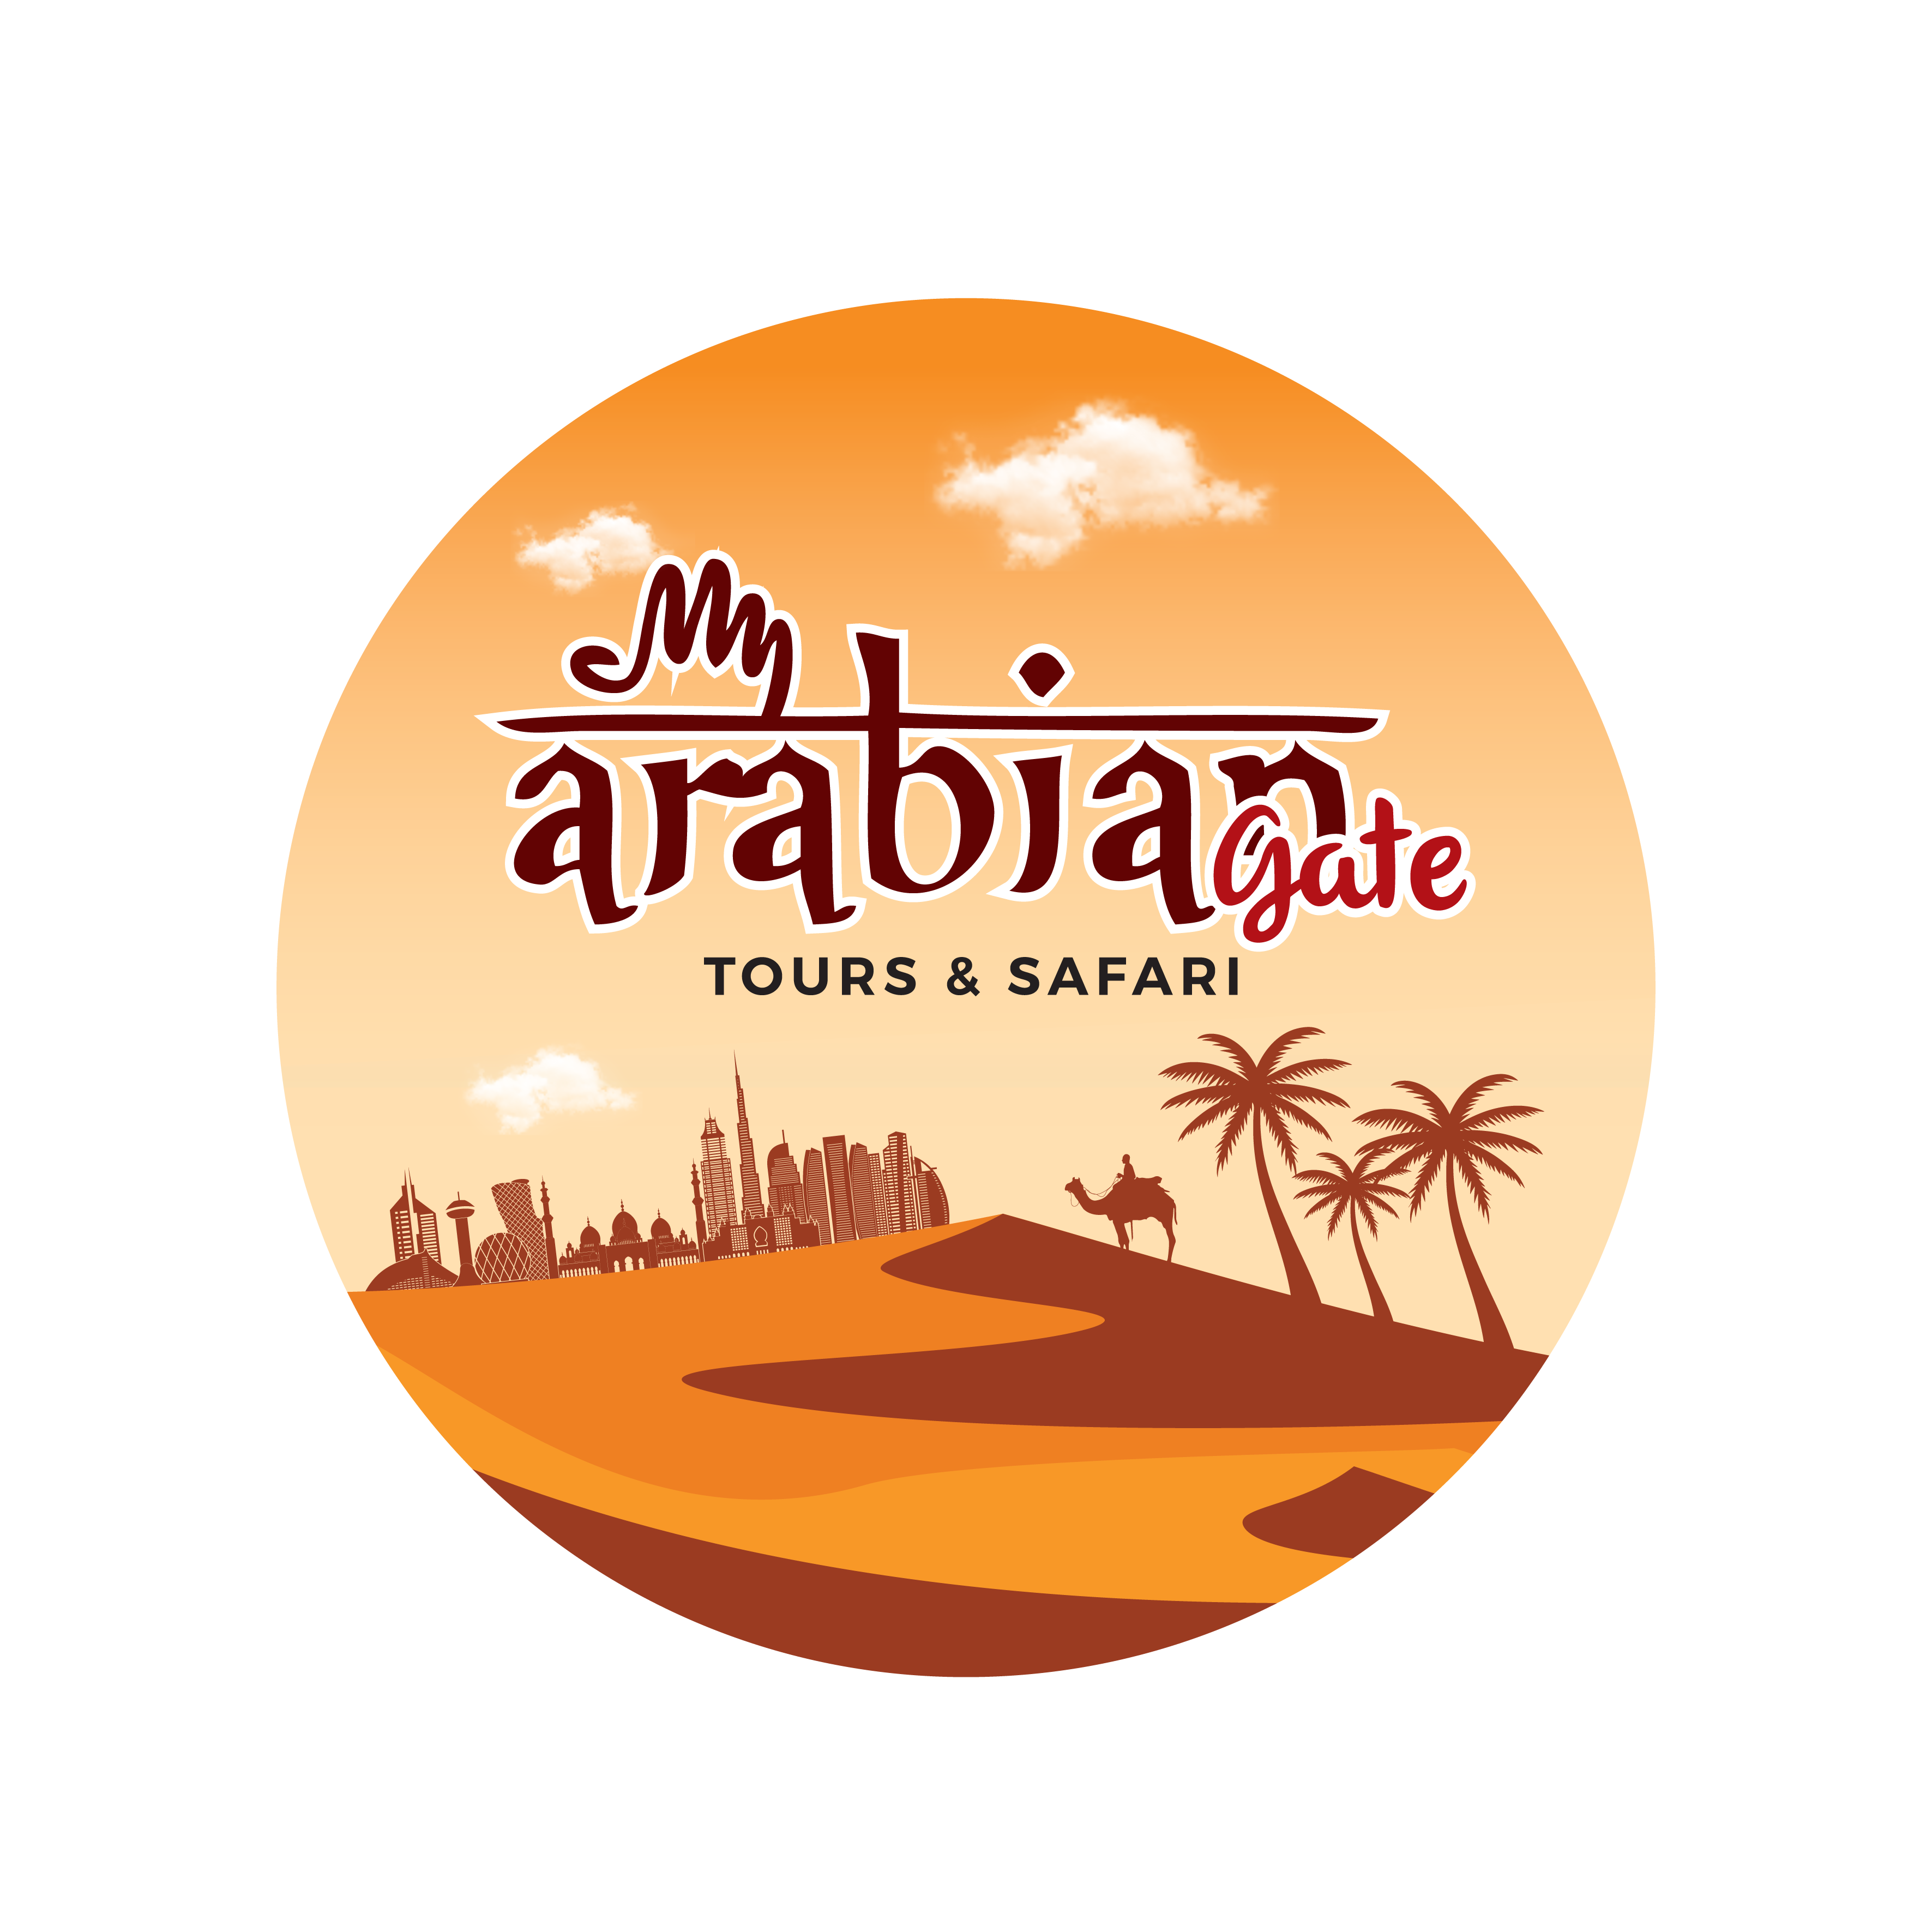 Abu Dhabi Desert Safari & City Tours | Rates | Tours| Desert Safari Abu Dhabi | Booking